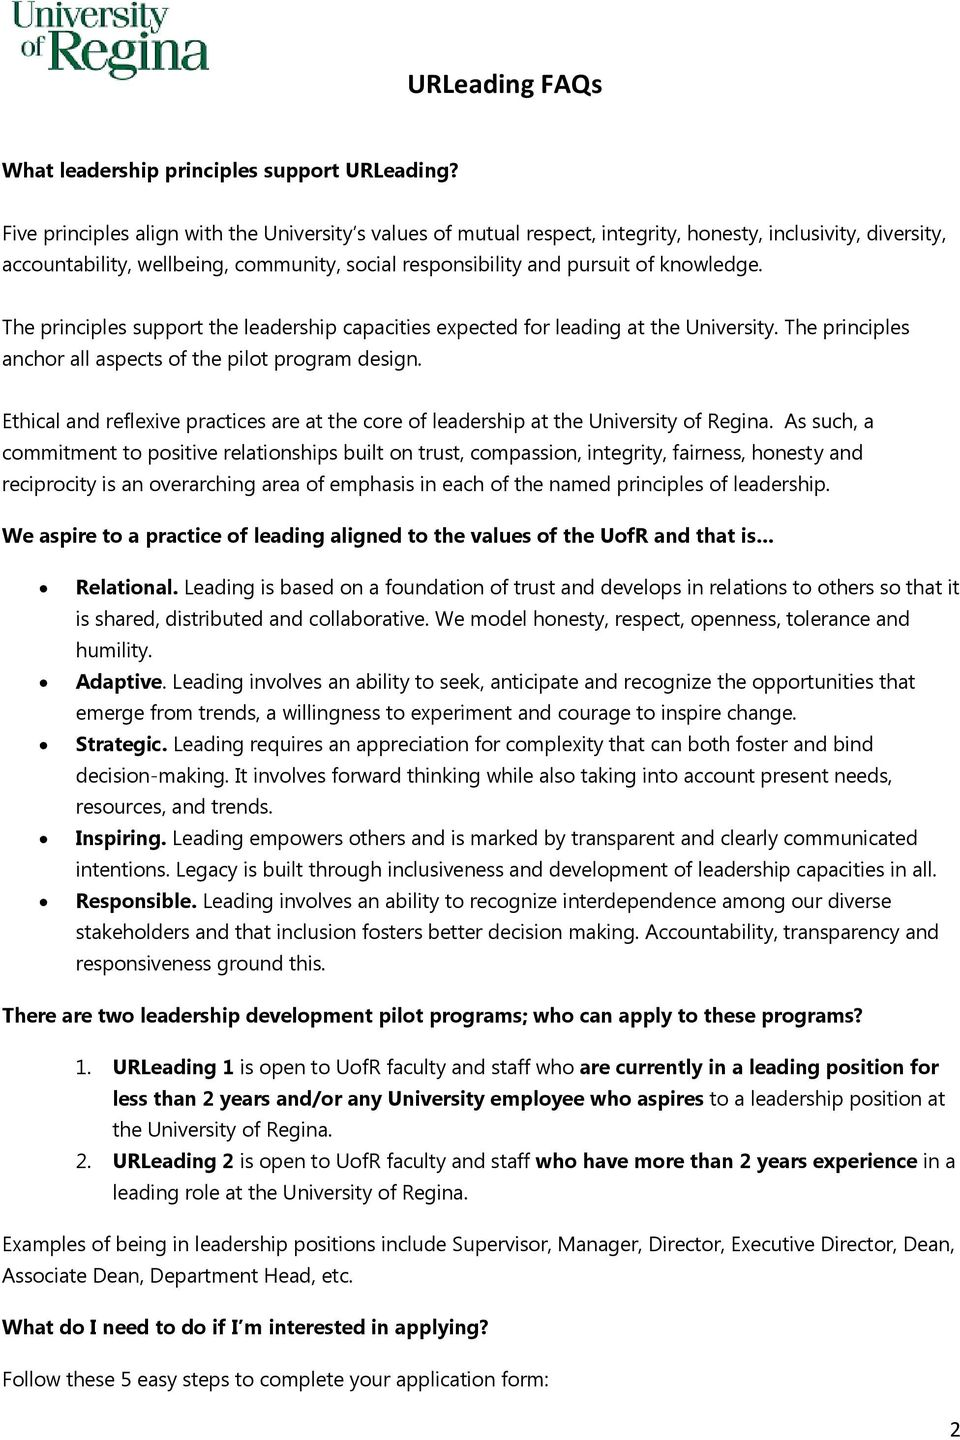 The principles support the leadership capacities expected for leading at the University. The principles anchor all aspects of the pilot program design.